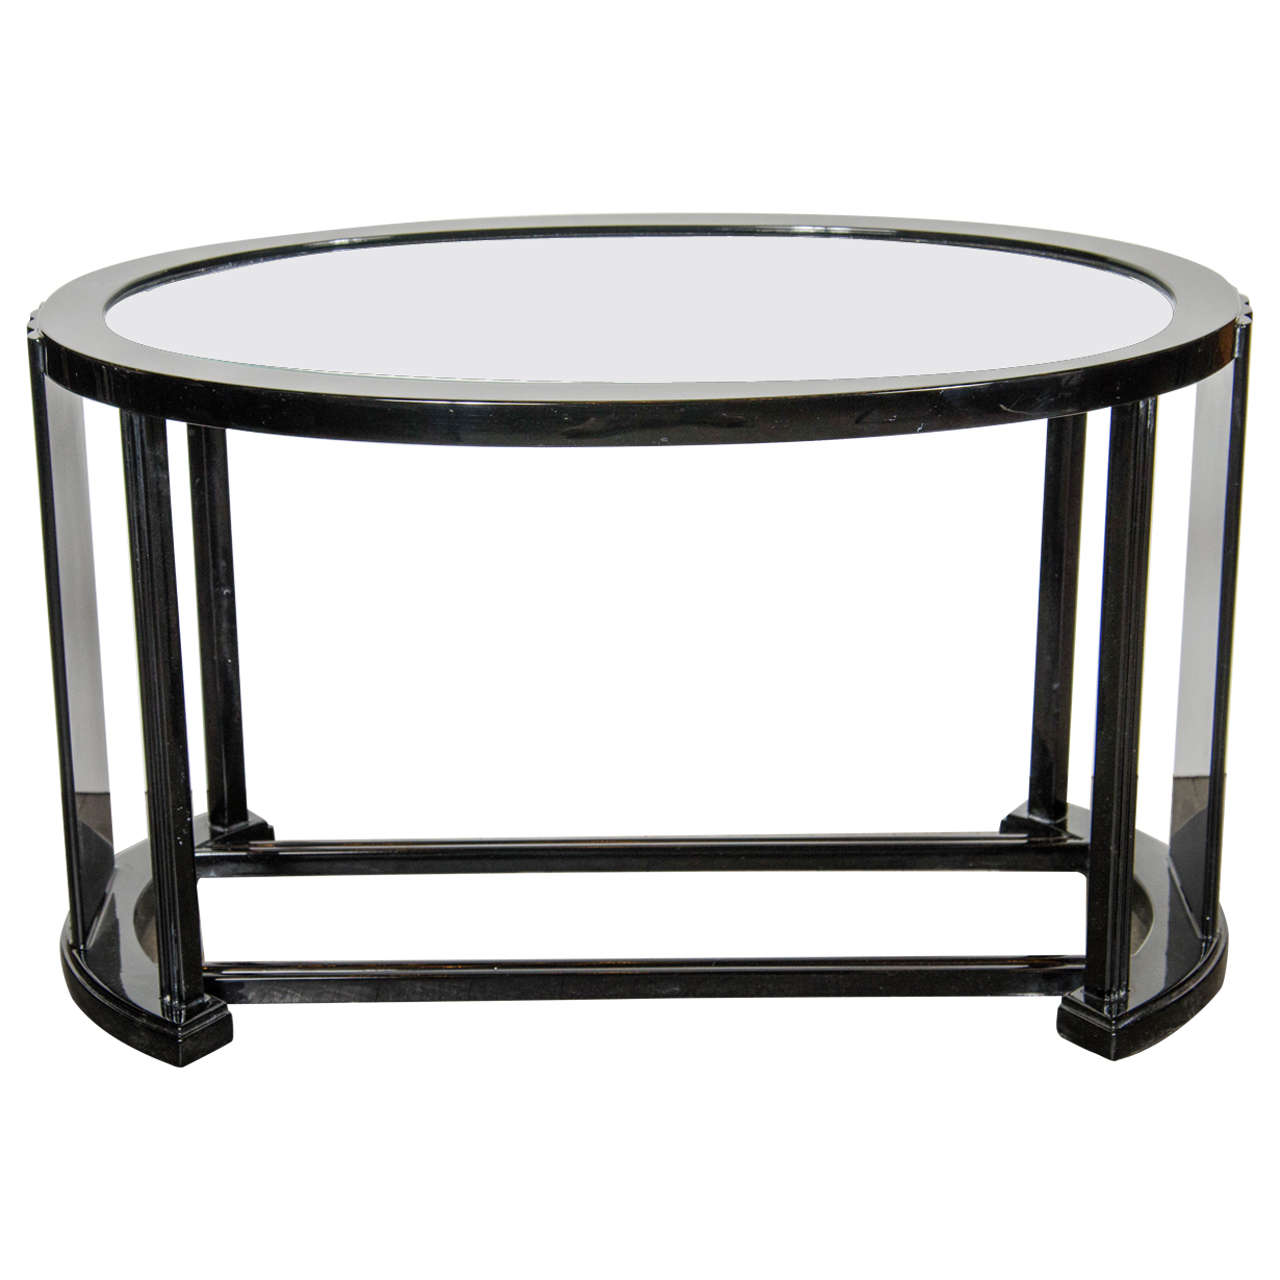 Attrayant Art Deco Bauhaus Style Cocktail Or Occasional Table In Black Lacquer And  Glass For Sale